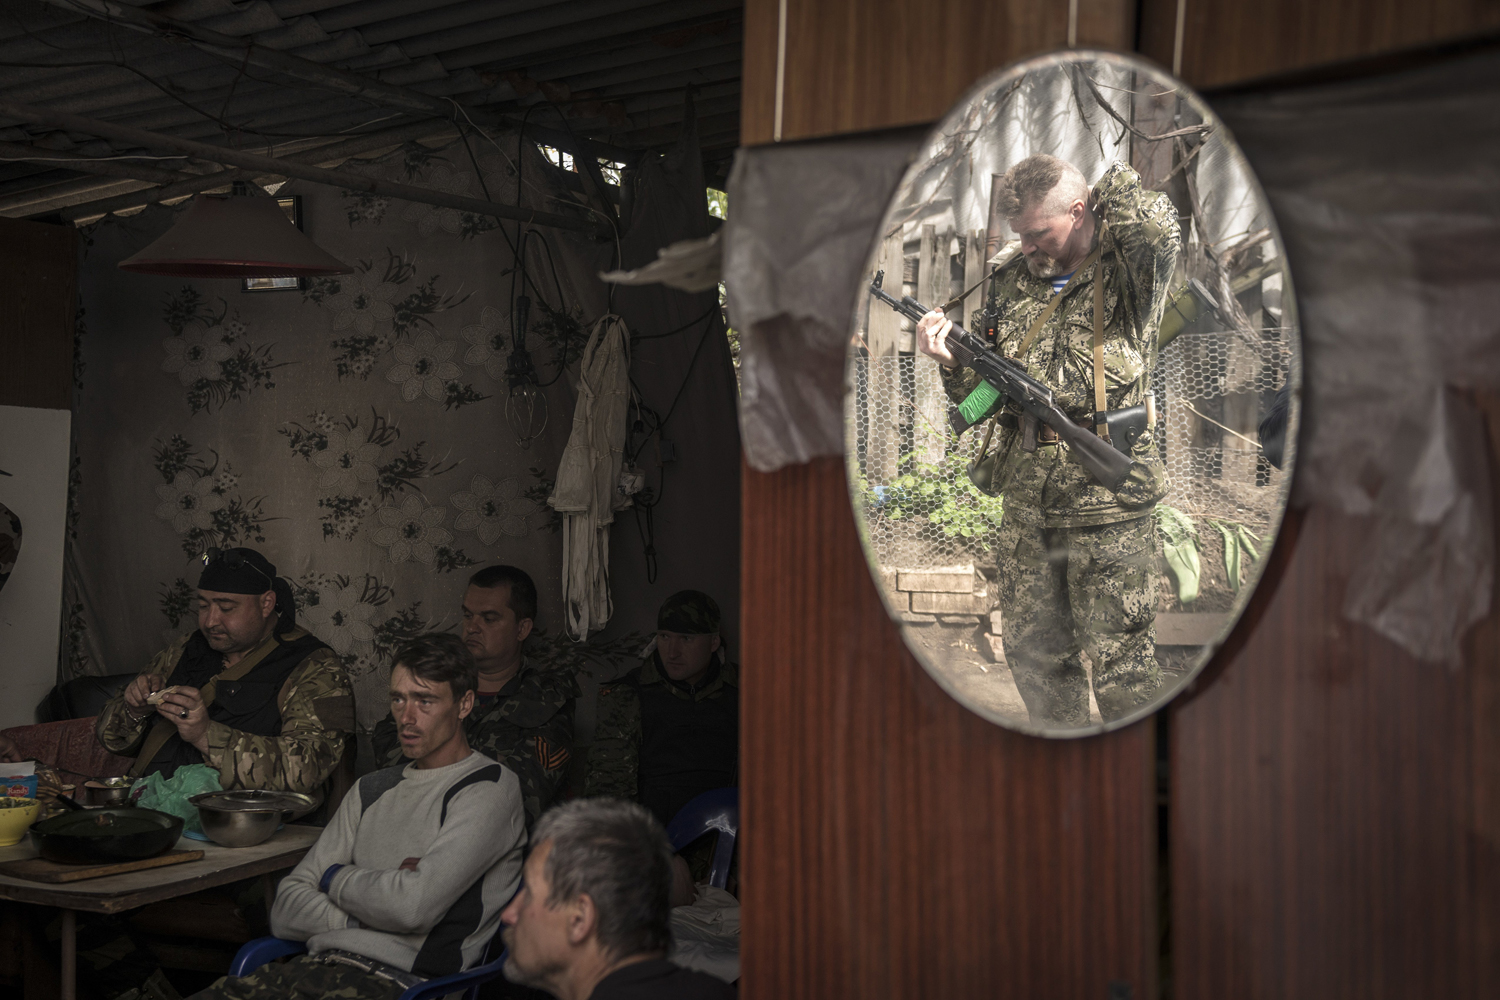 May 9, 2014. A pro-Russian militant is reflected in a mirror as he adjusts his rifle, while others watch a Victory Day military parade in Moscow on the television.